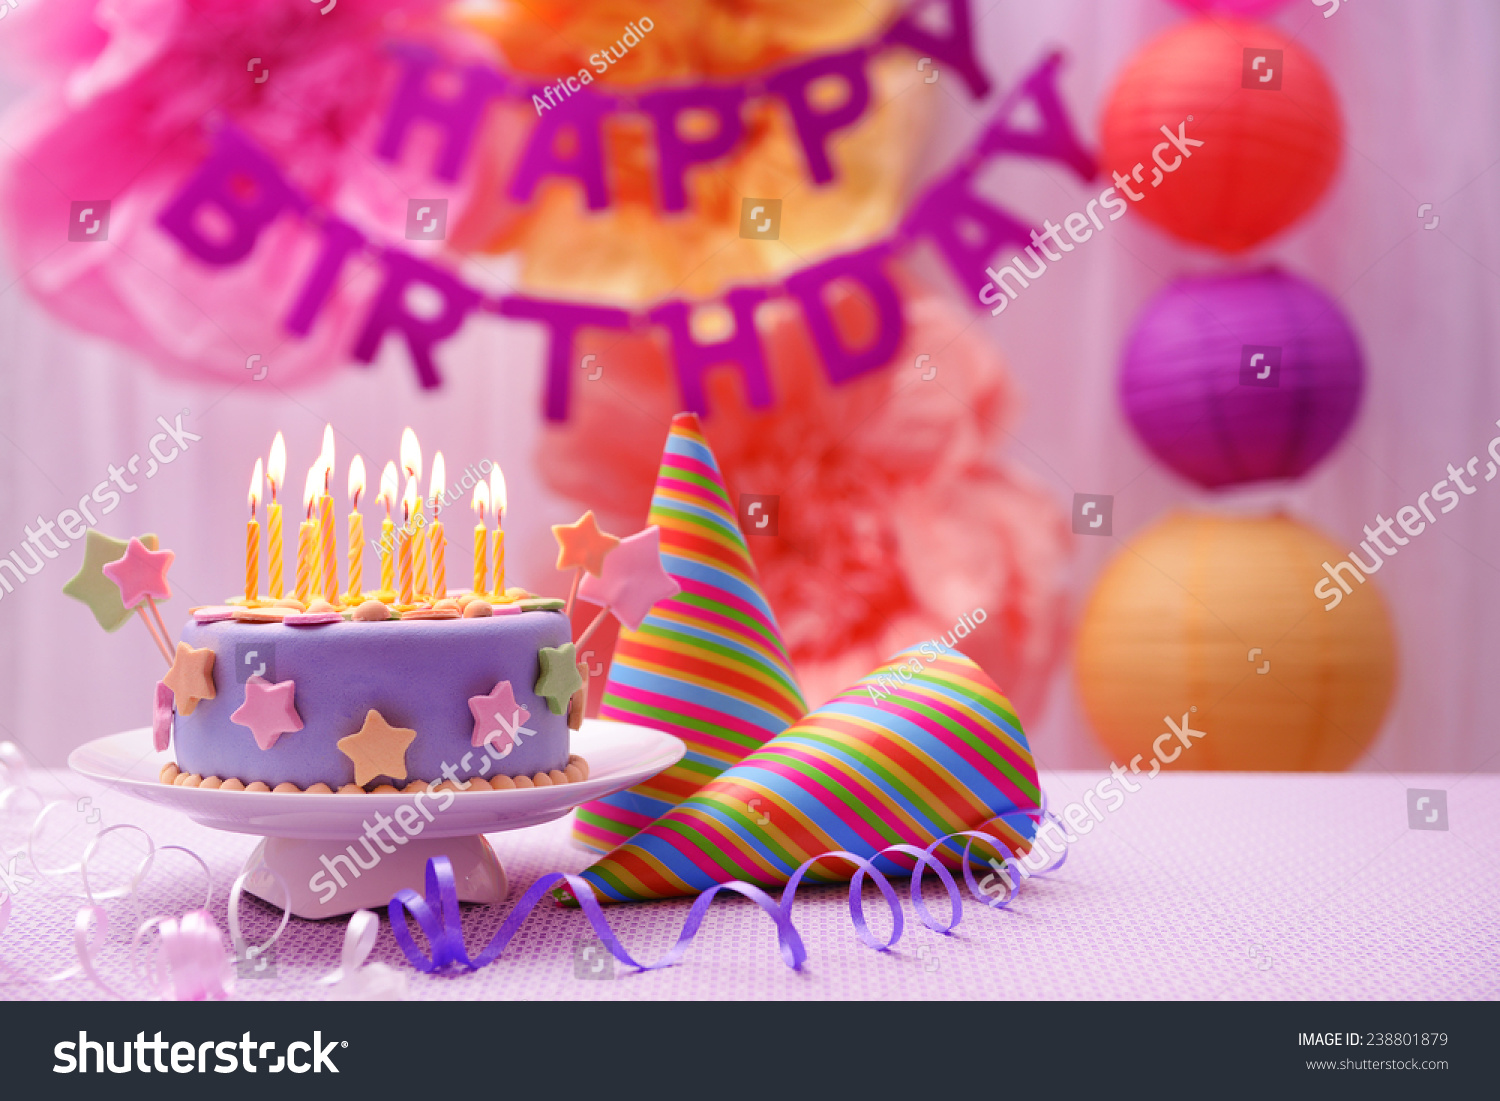 Delicious Birthday Cake On Table On Stock Photo Royalty Free